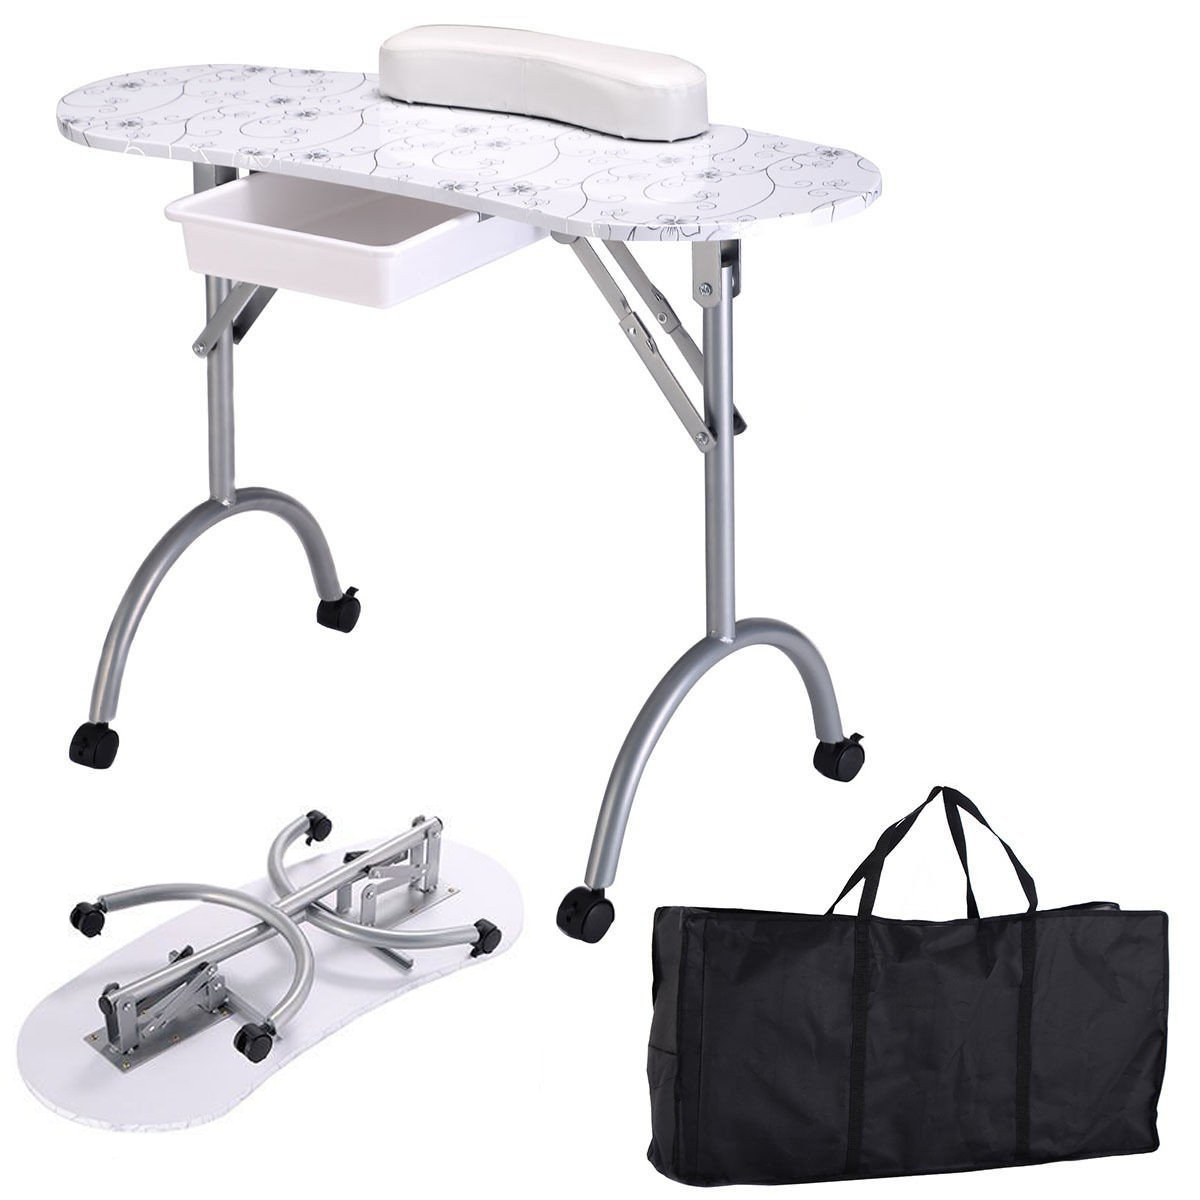 Fashion Pattern Removable Portable Folding Nail Table With Bag Stable & Durable Nail Tables With Movable Wheel Drawer MT-017F